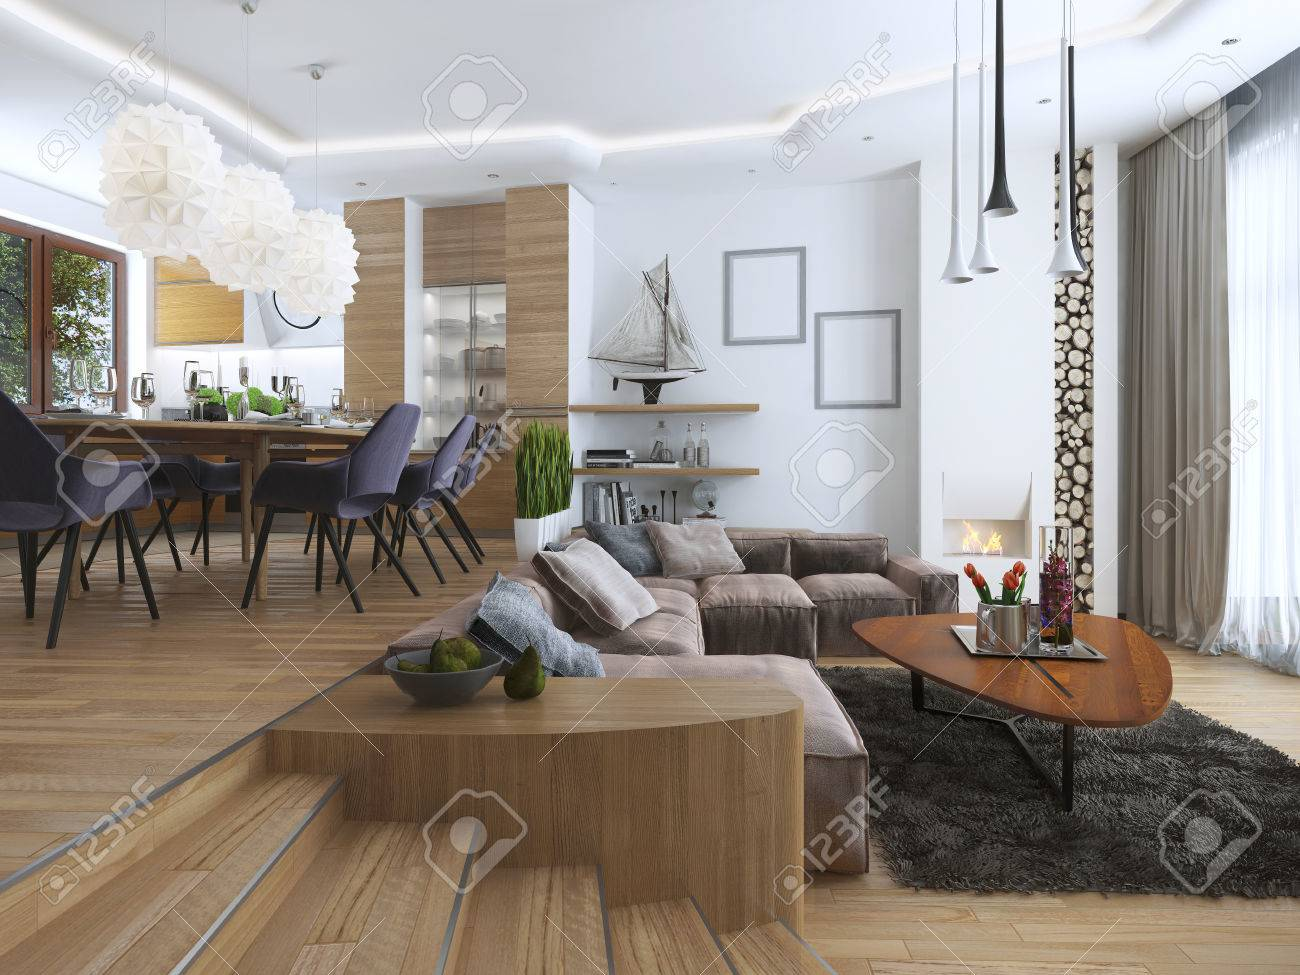 Studio Apartment With Living Room And Dining Room In A Contemporary